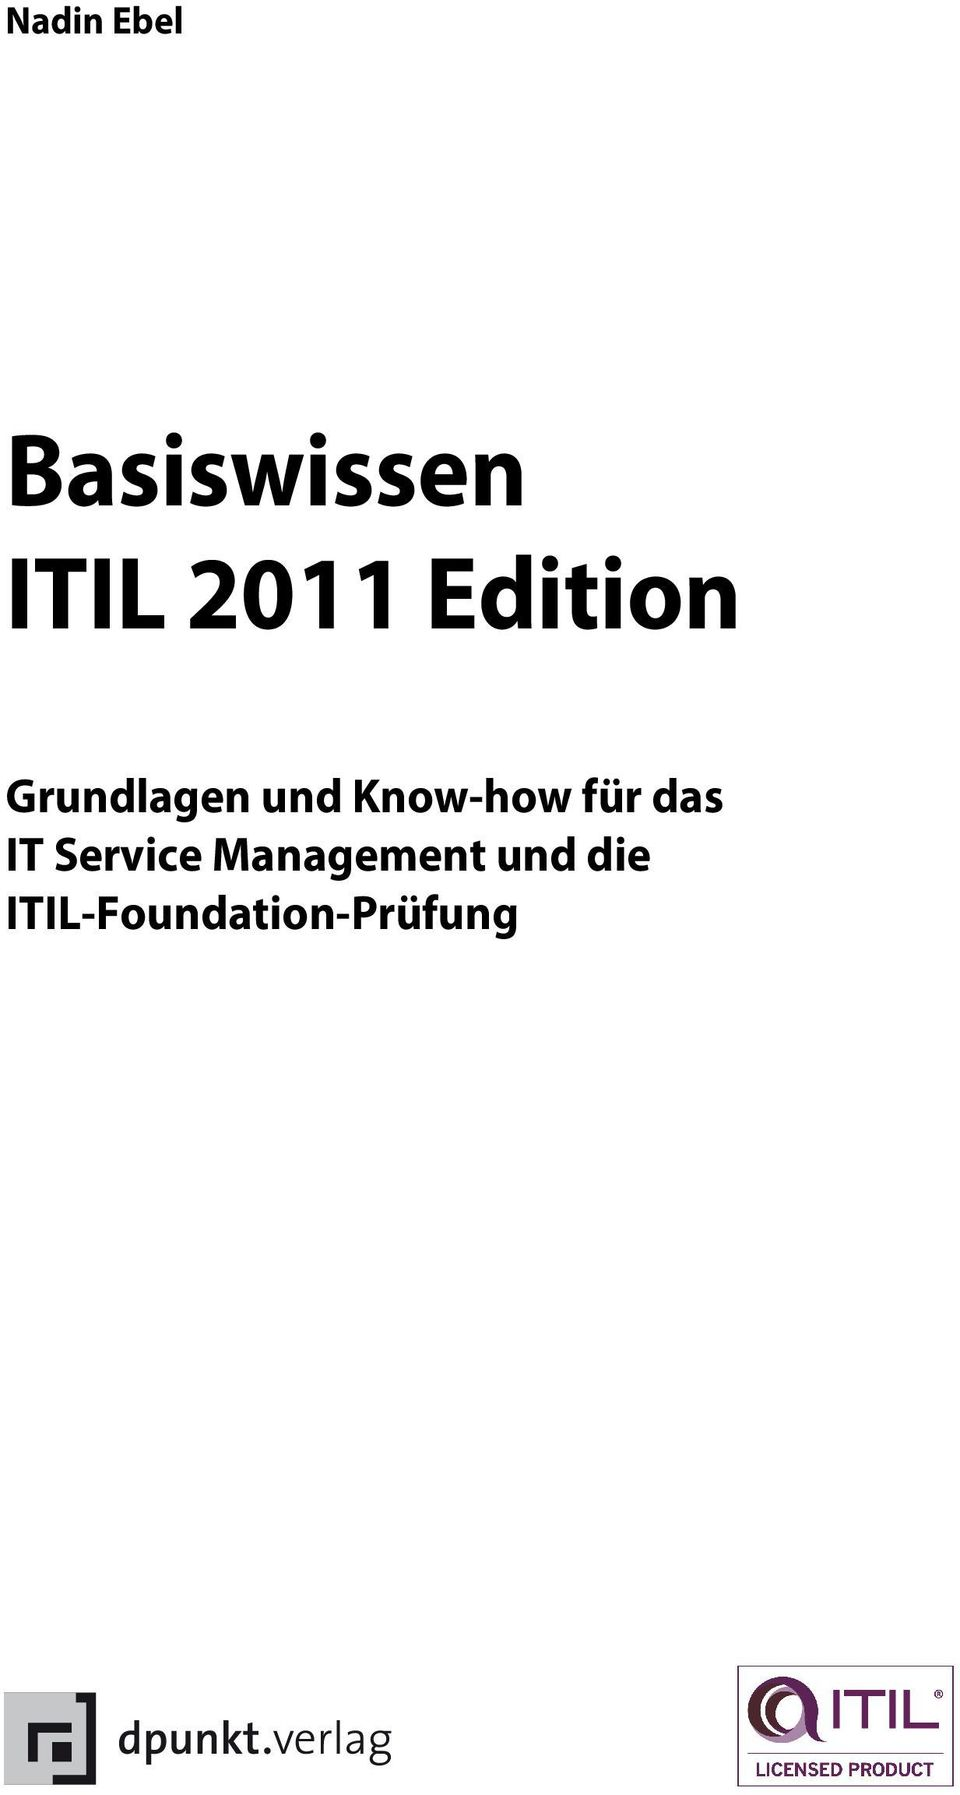 Know-how für das IT Service